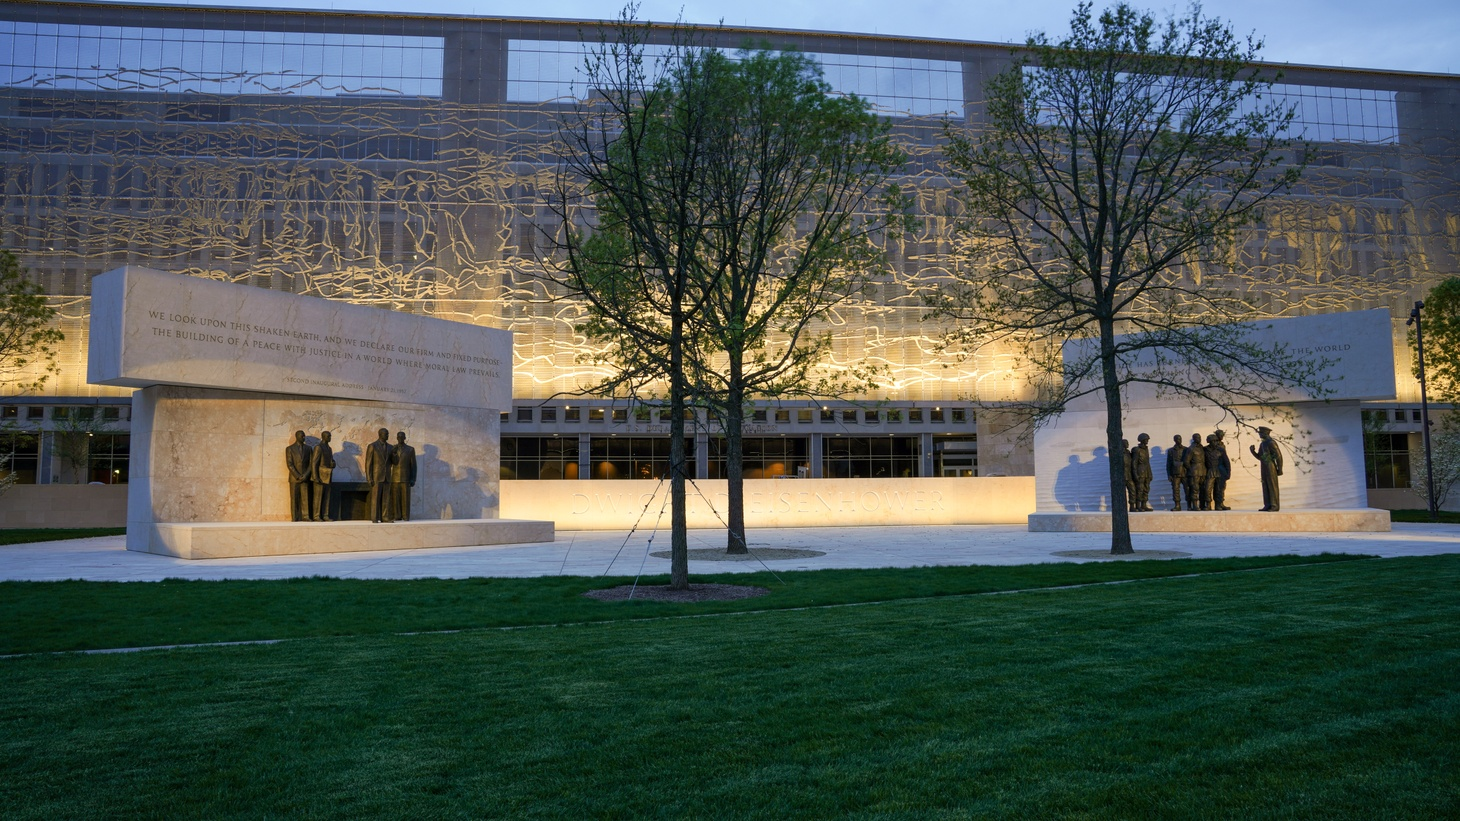 Architect Frank Gehry's new Dwight D. Eisenhower memorial spans a four-acre park near Capitol Hill in Washington D.C.